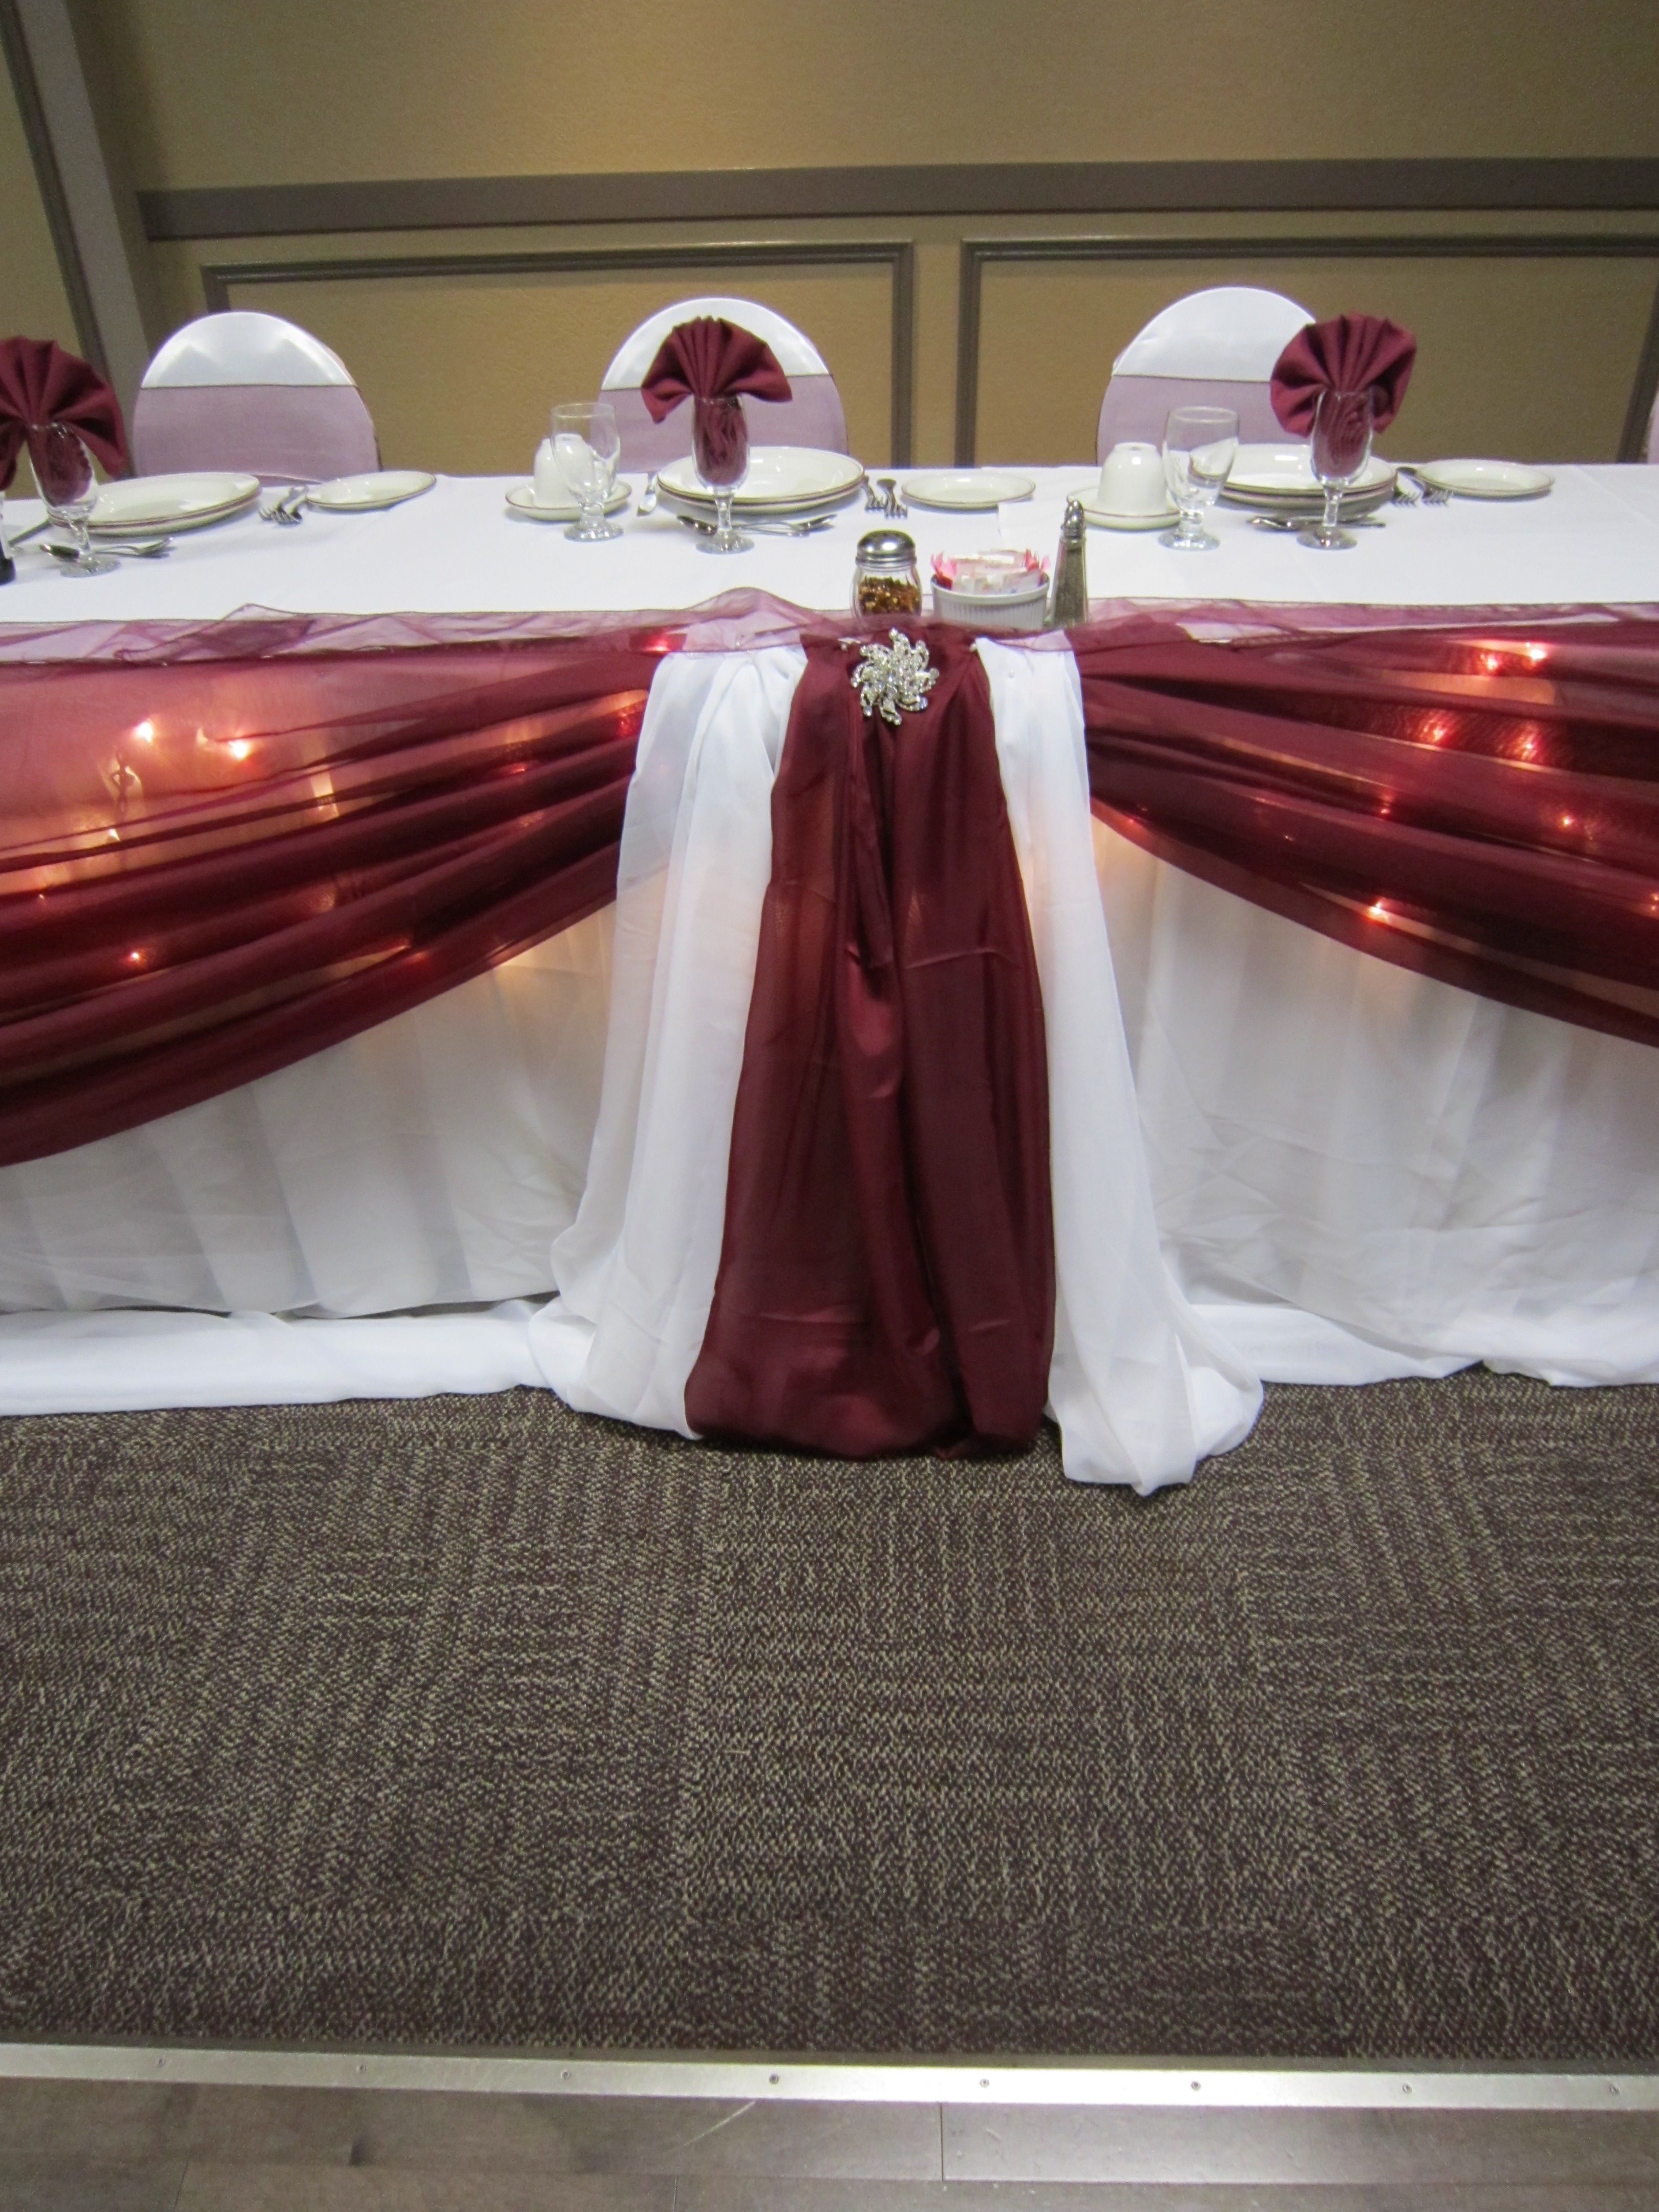 Head table with icicle lights set the mood decor aundrea 009 aundrea 015 aundrea 001 aundrea 007 junglespirit Images